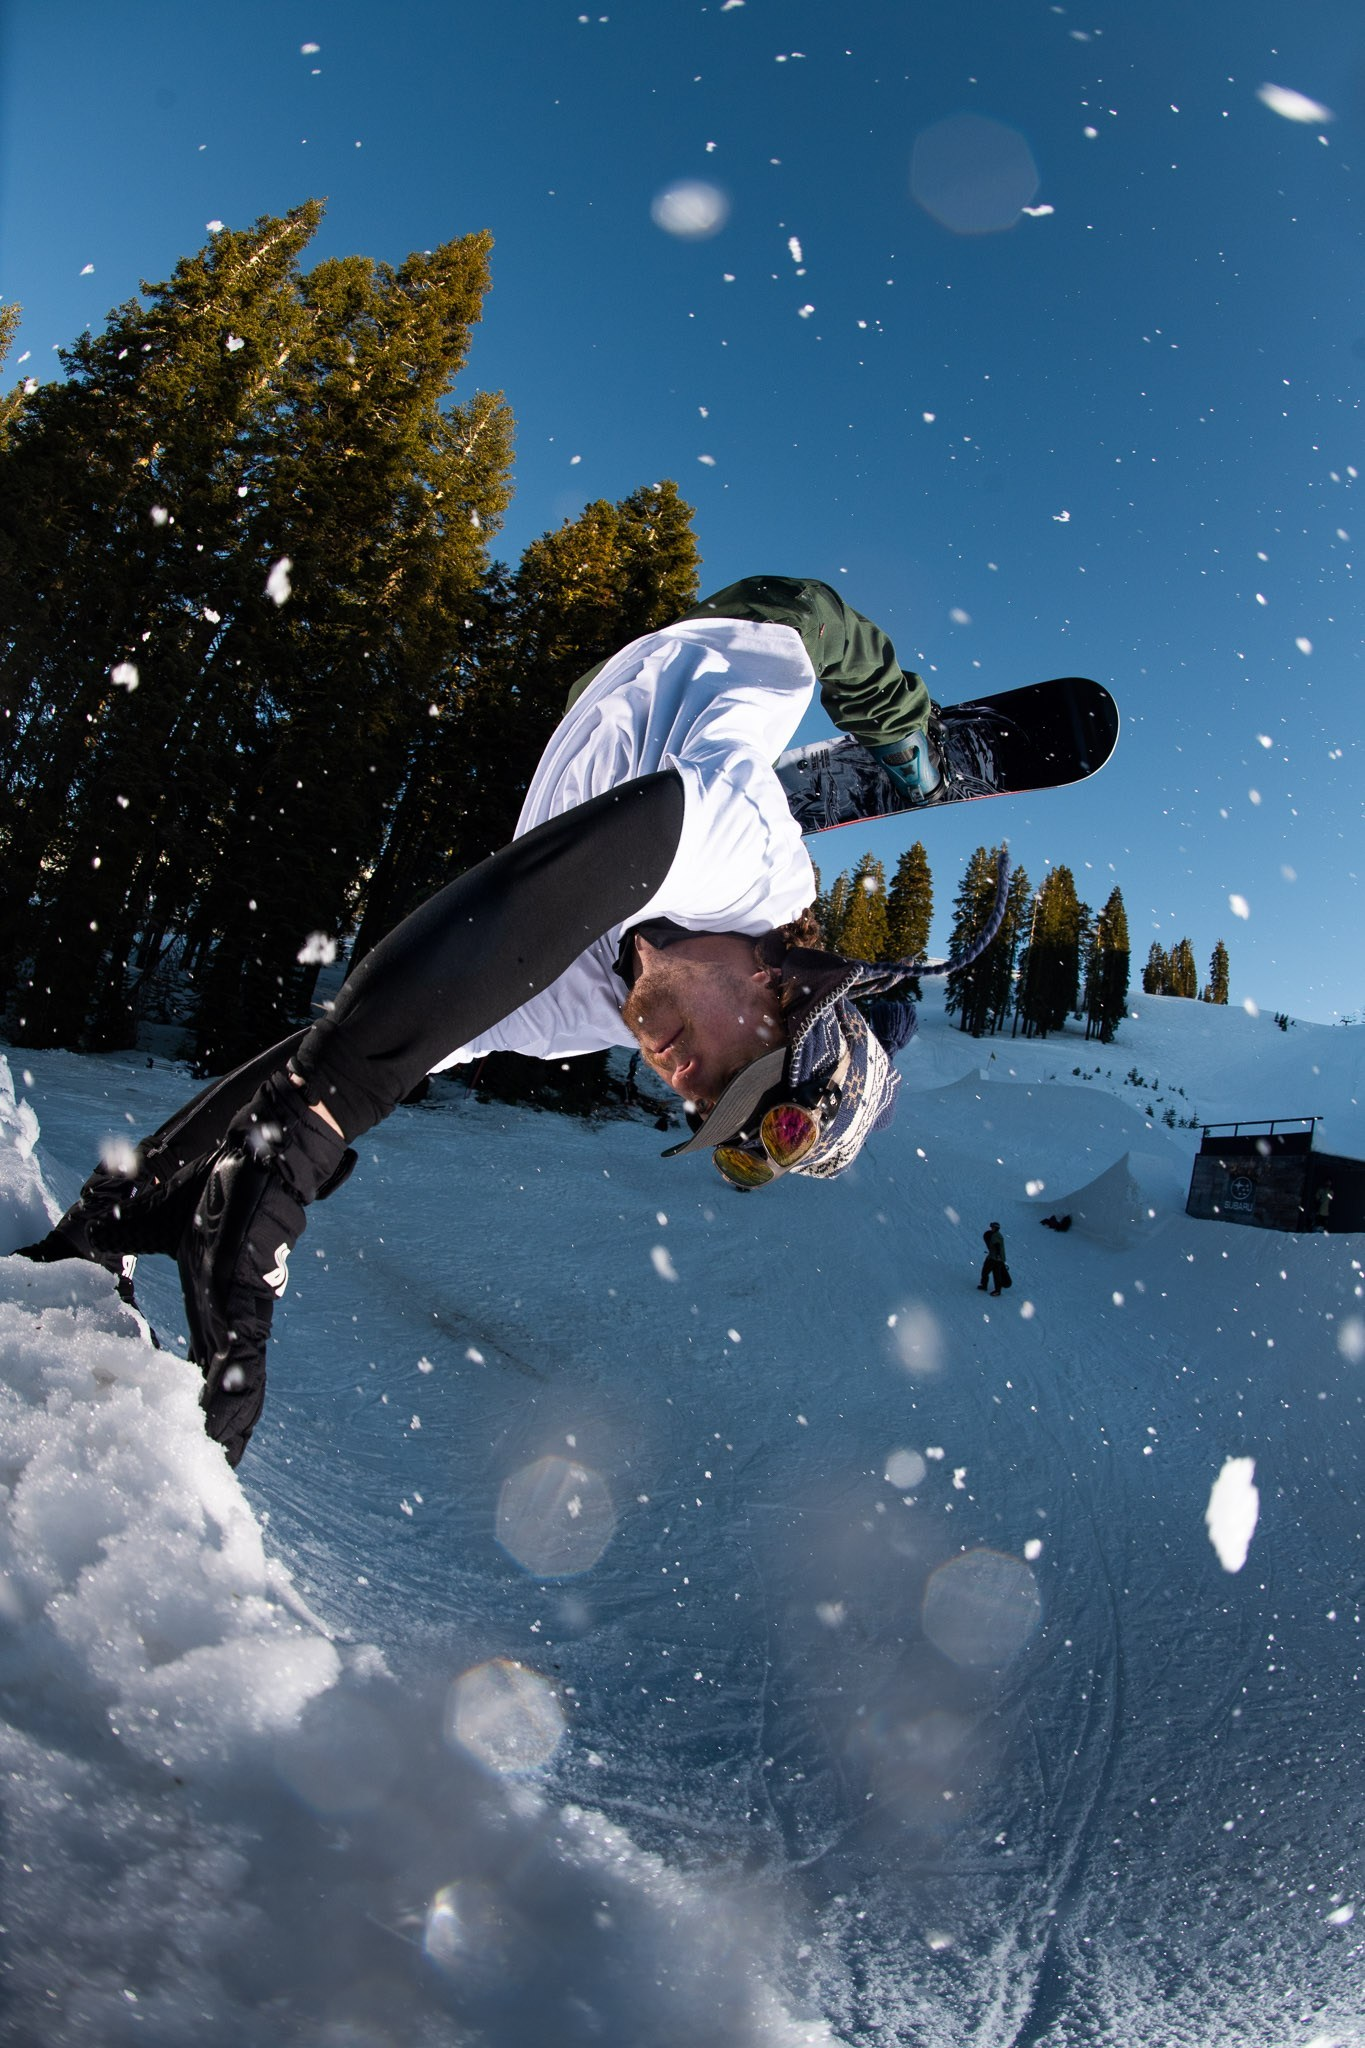 Lib Tech TRS at Boreal—Board Testing In The Pop-Up Park